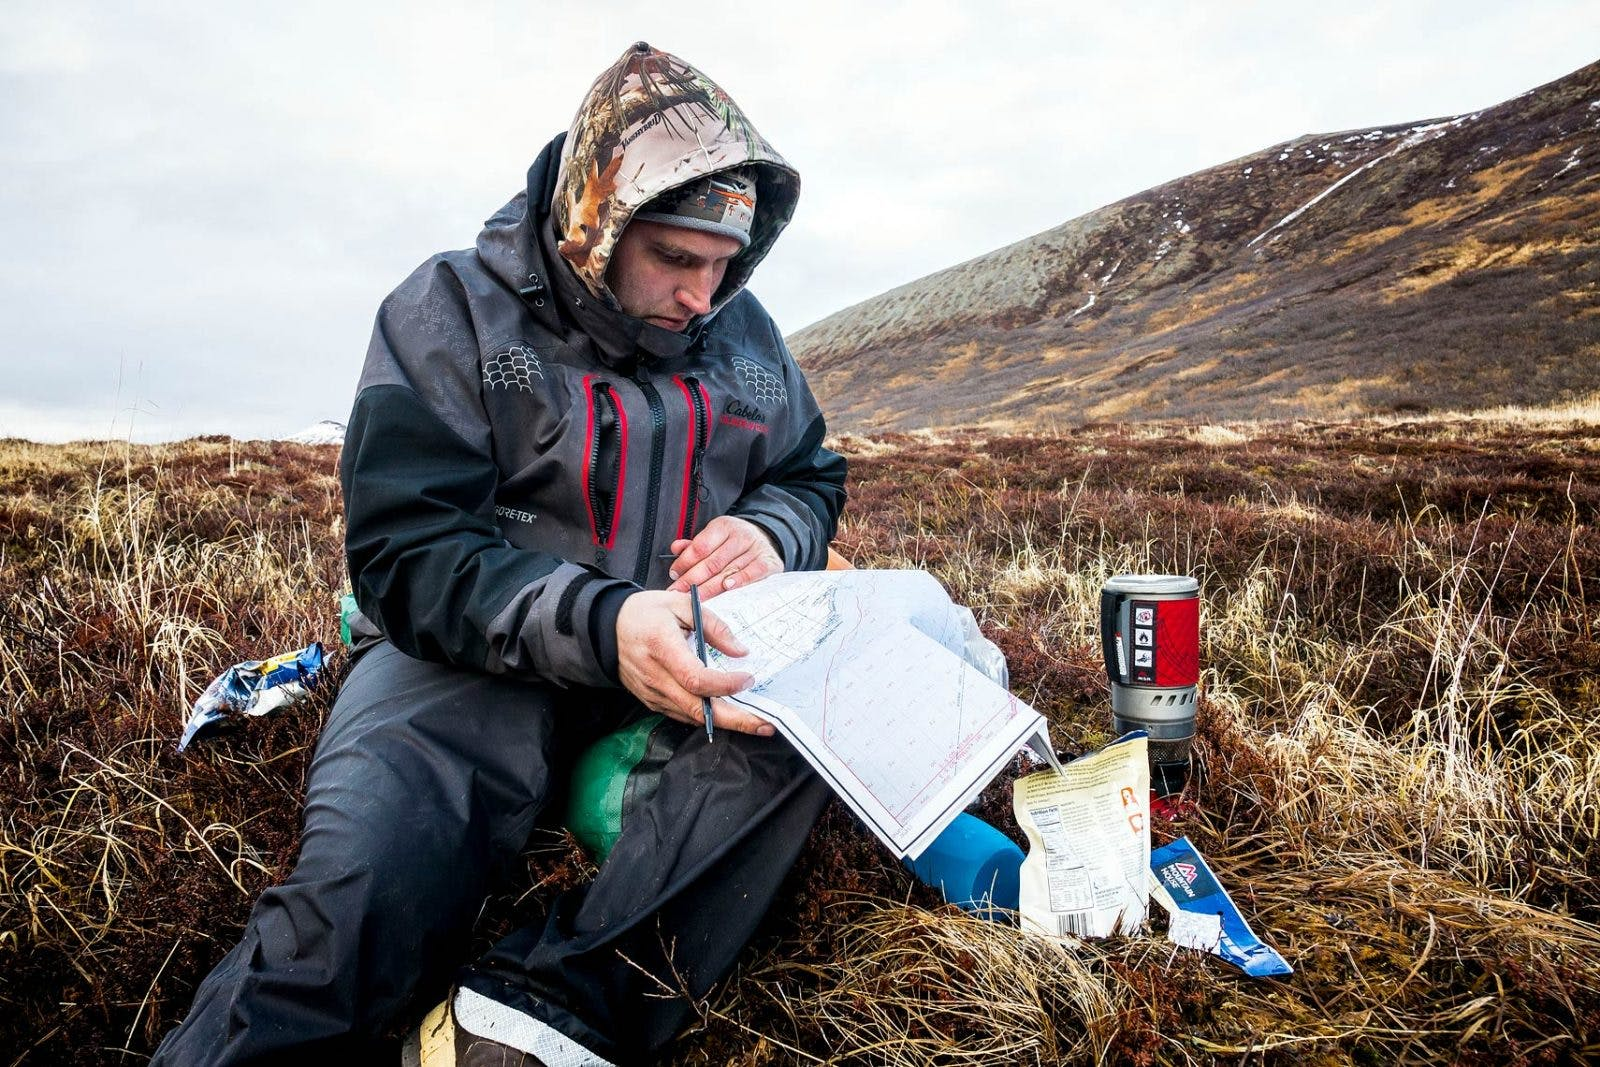 Bjorn Dihle reviews a topo map to plan the next day's route while boiling water for the evening meal.